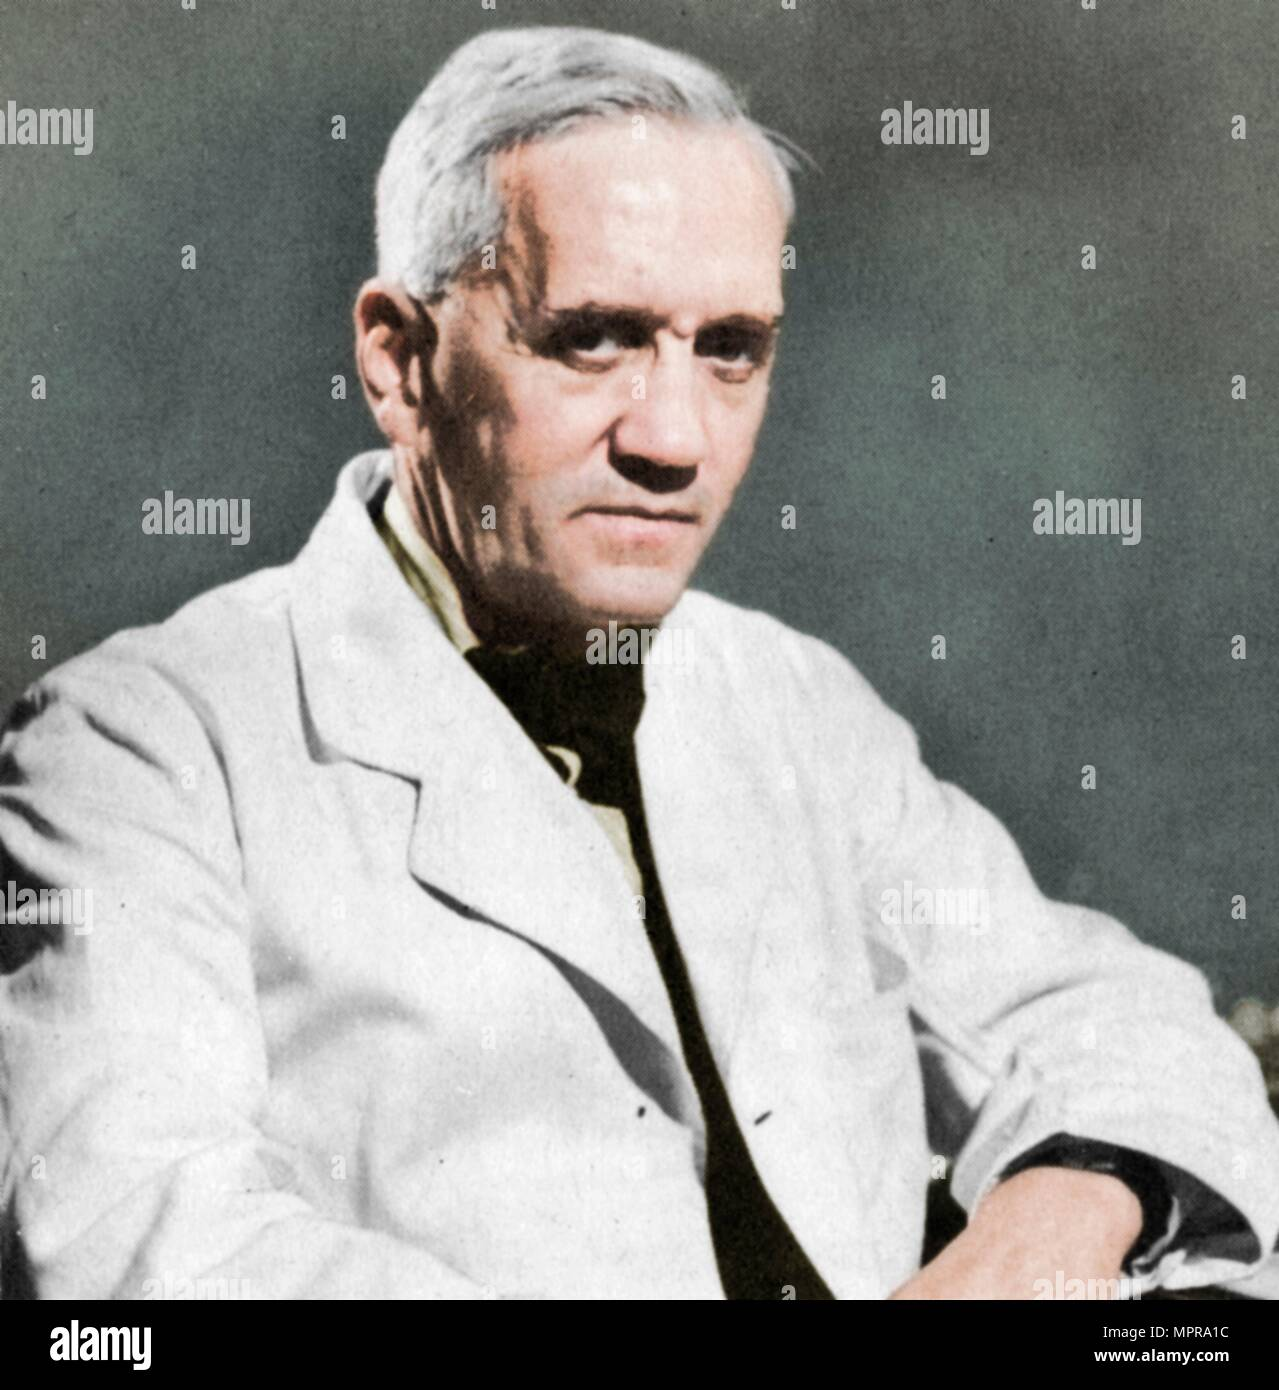 Alexander Fleming, Scottish bacteriologist, c1930s. Artist: Unknown. - Stock Image